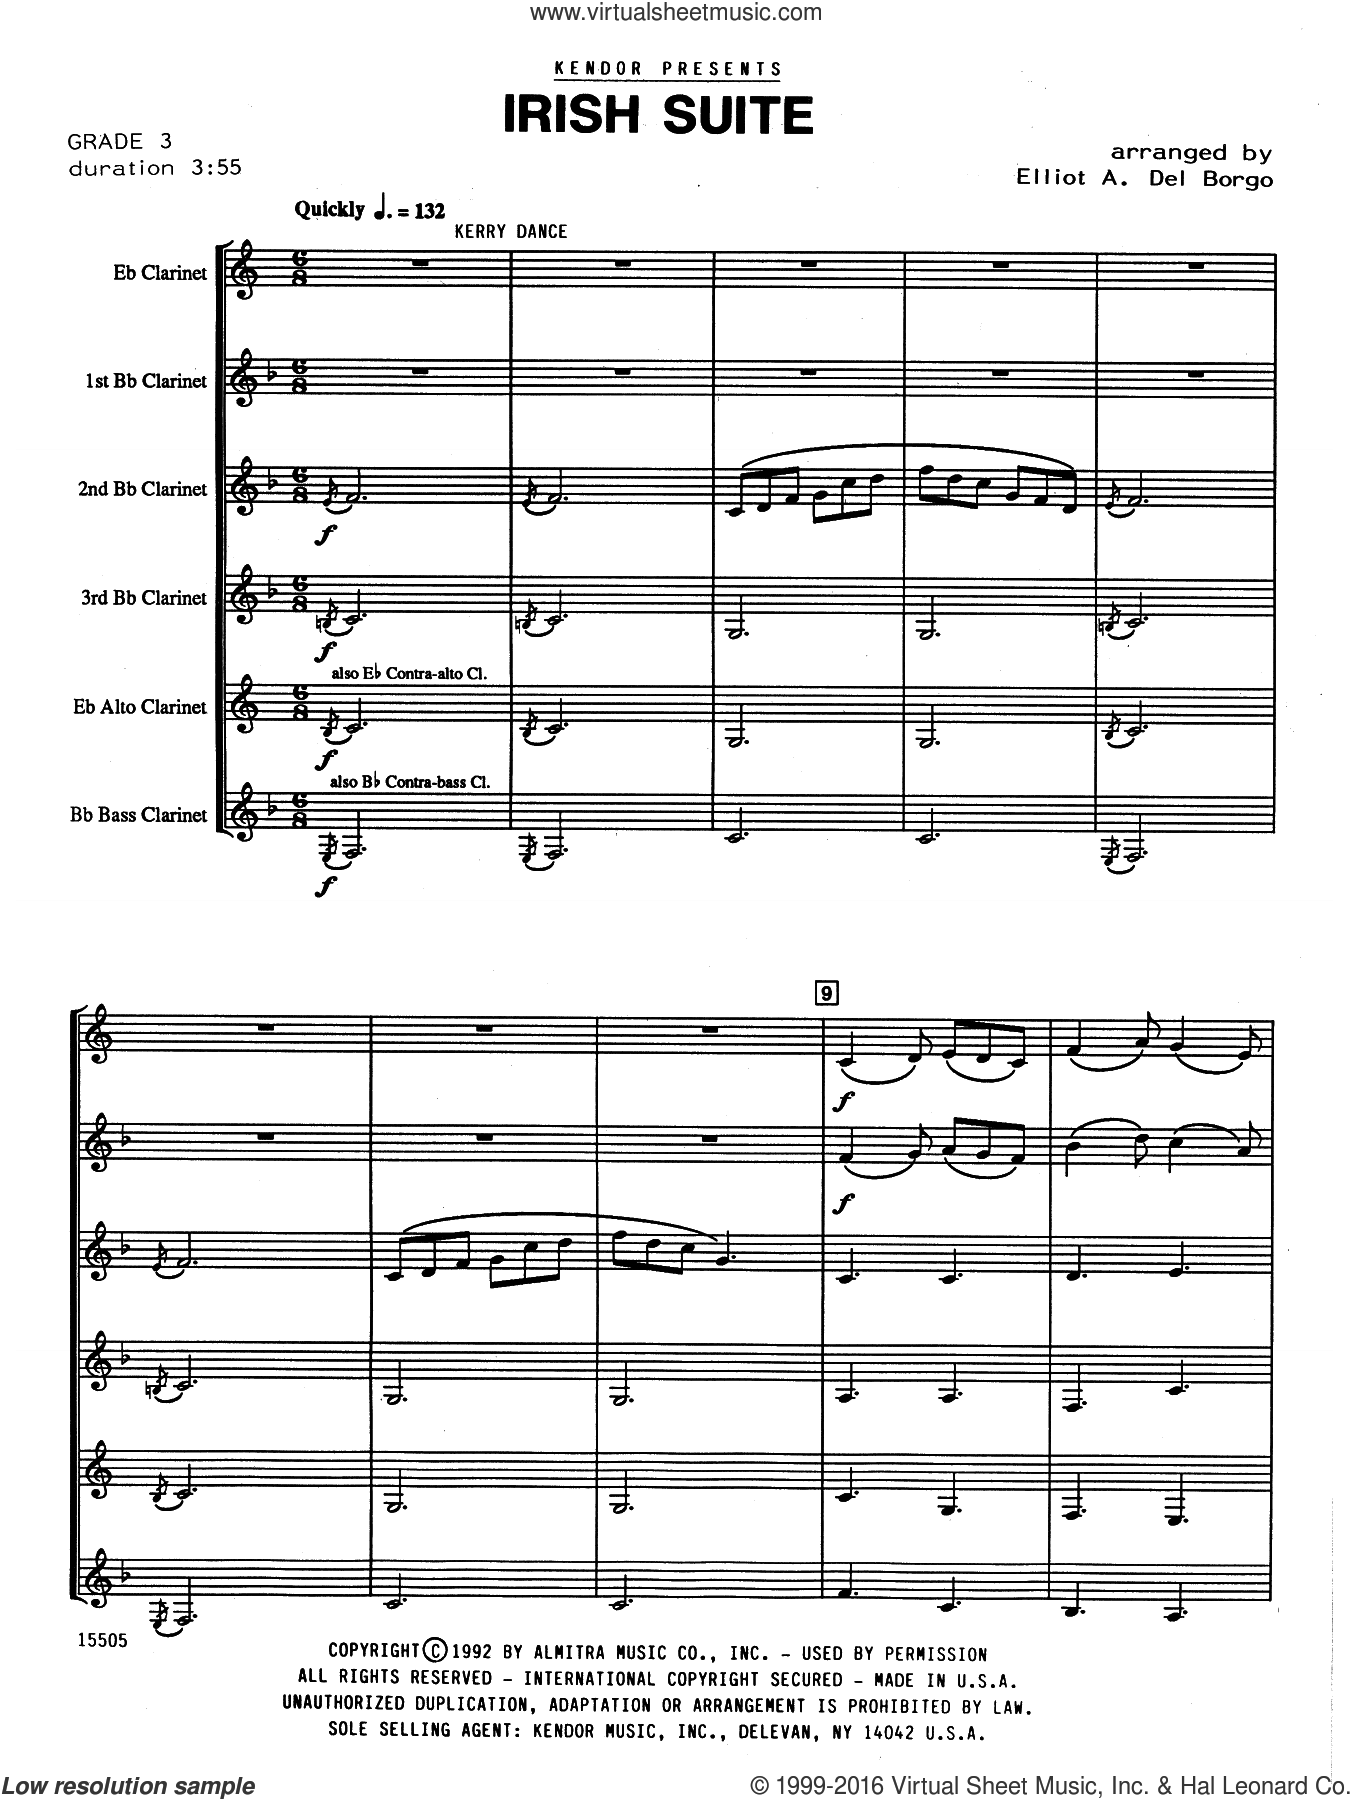 Irish Suite (COMPLETE) sheet music for clarinet ensemble by Elliot A. Del Borgo. Score Image Preview.